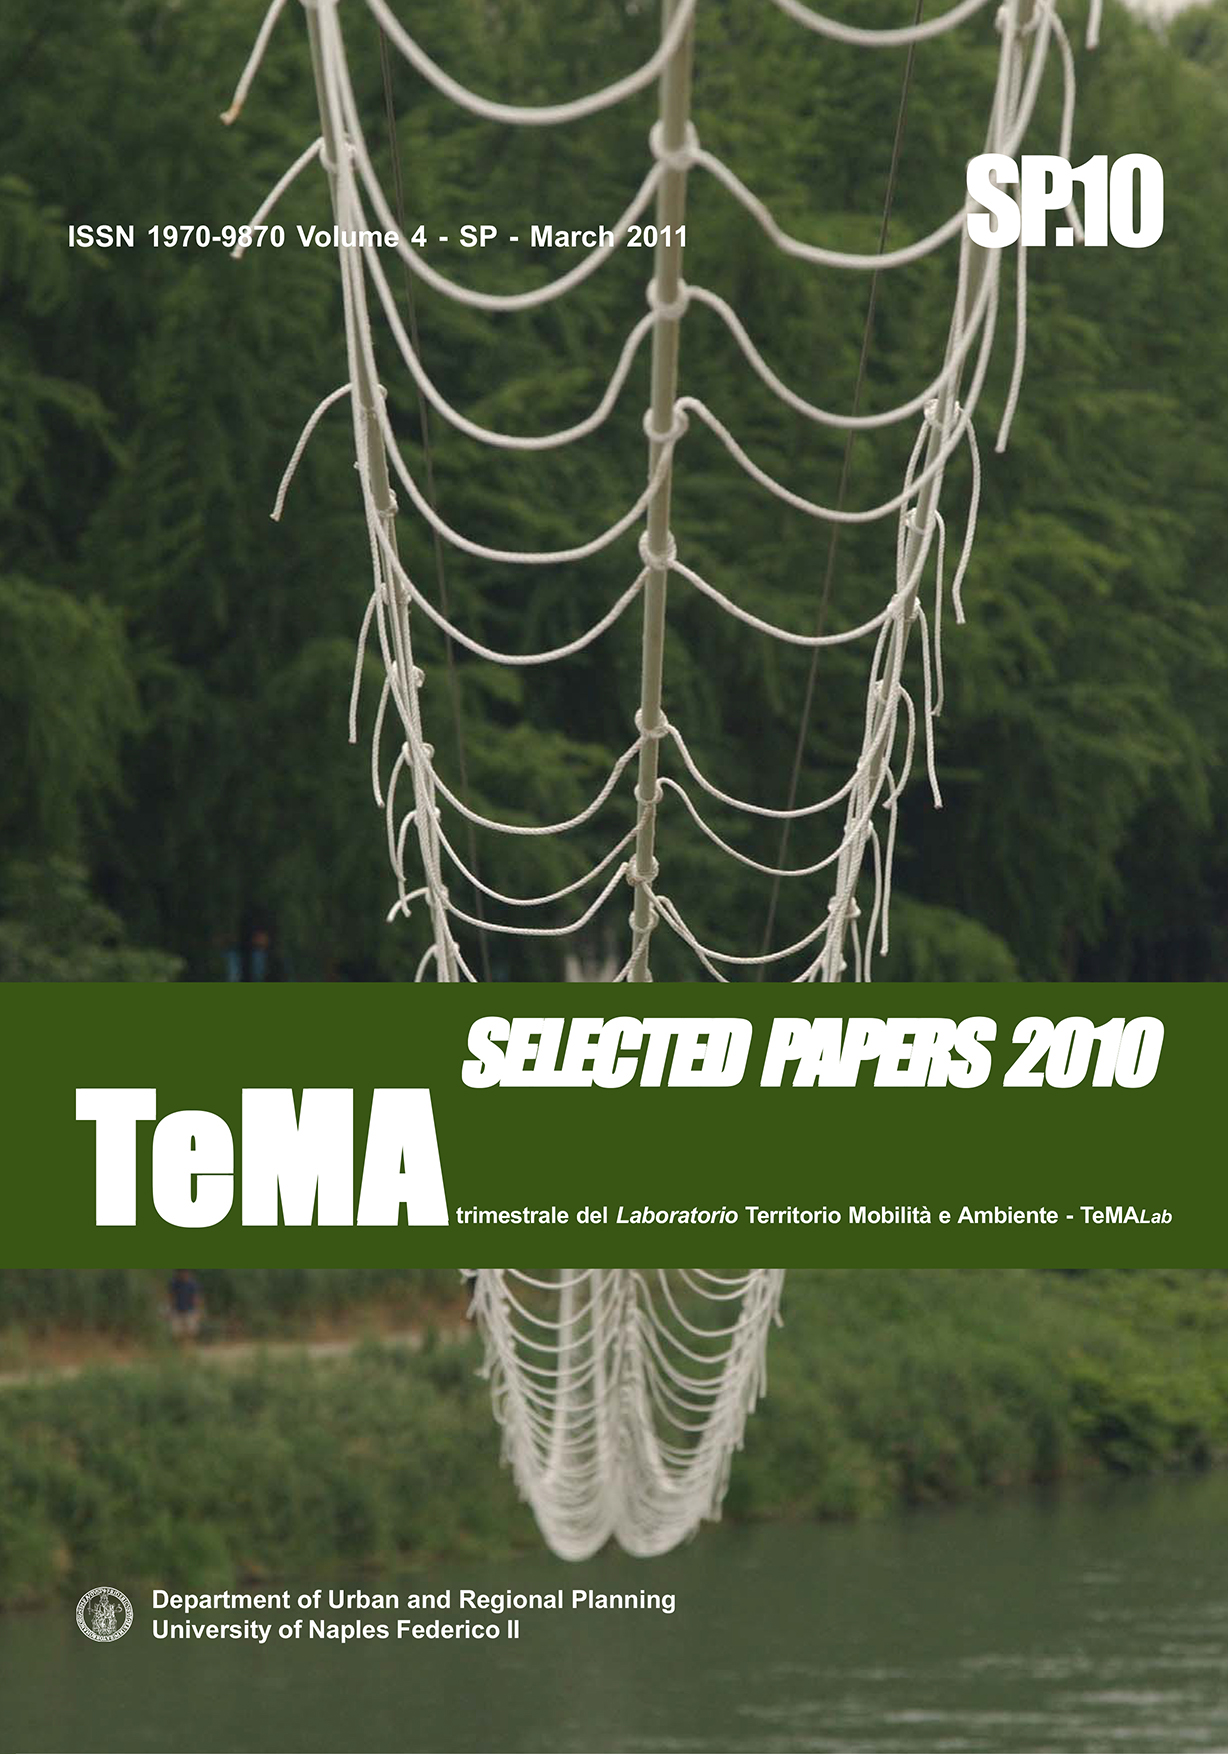 14_Selected Papers 2010